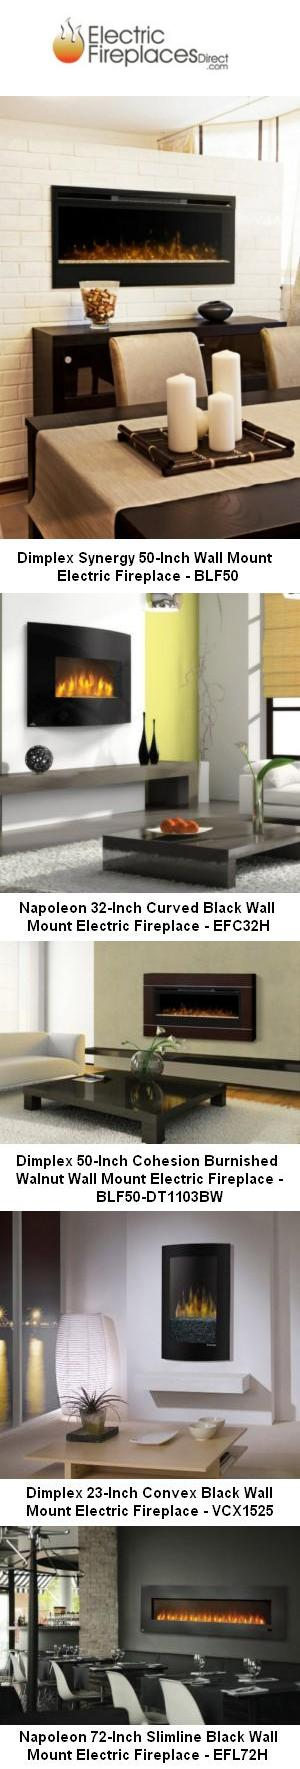 Wall Mount Electric Fireplaces Renovation Brands Sweets